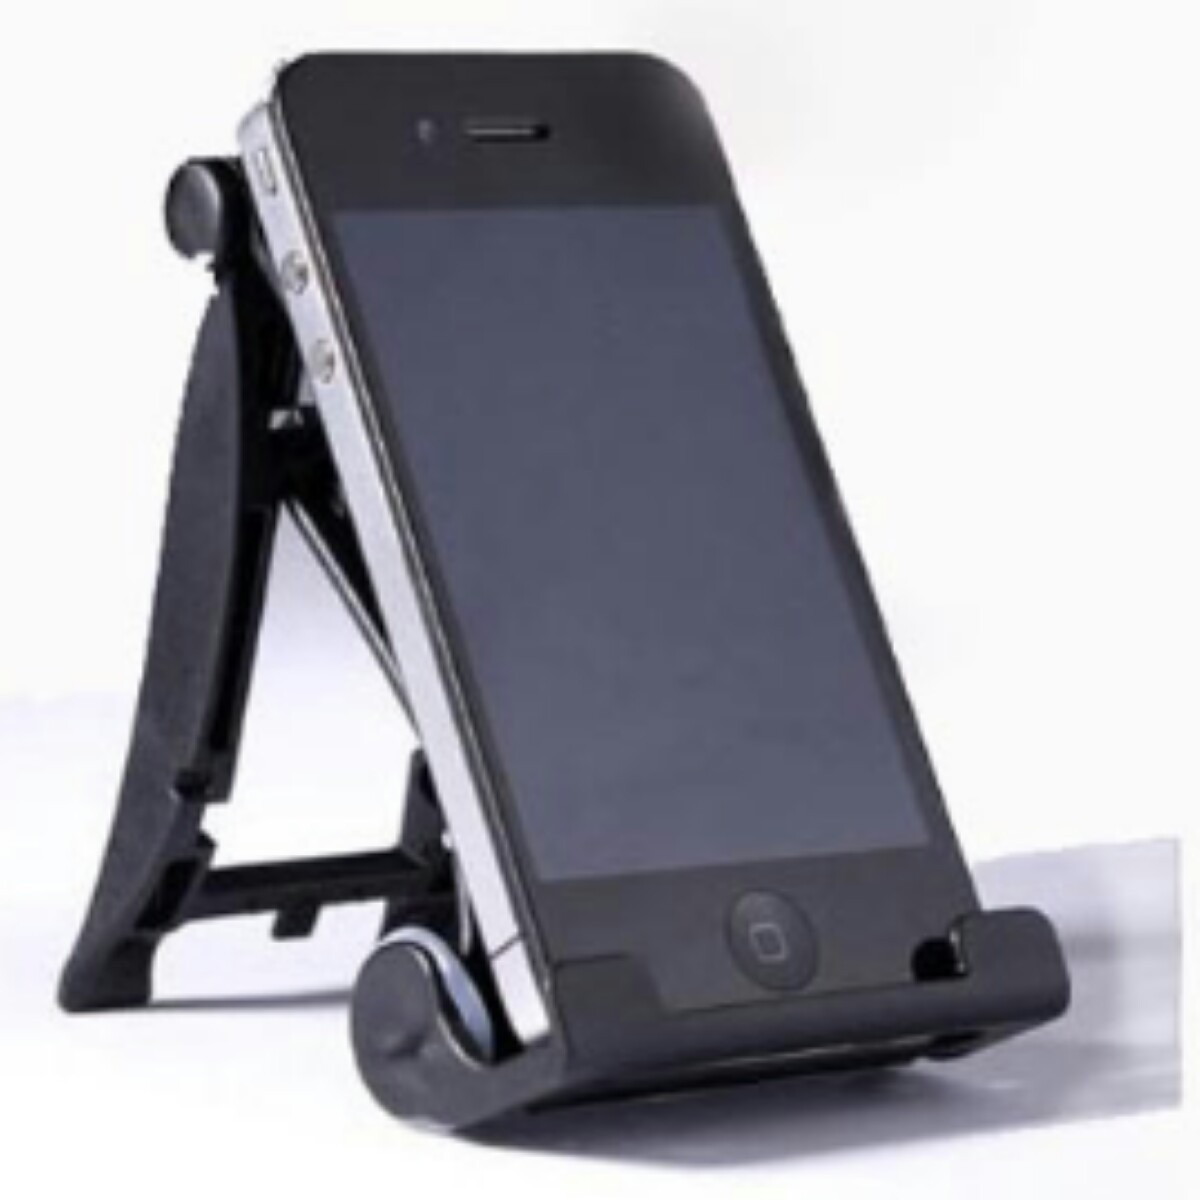 Base o soporte para celular tablet o smartphone 100 for Soporte para movil mesa